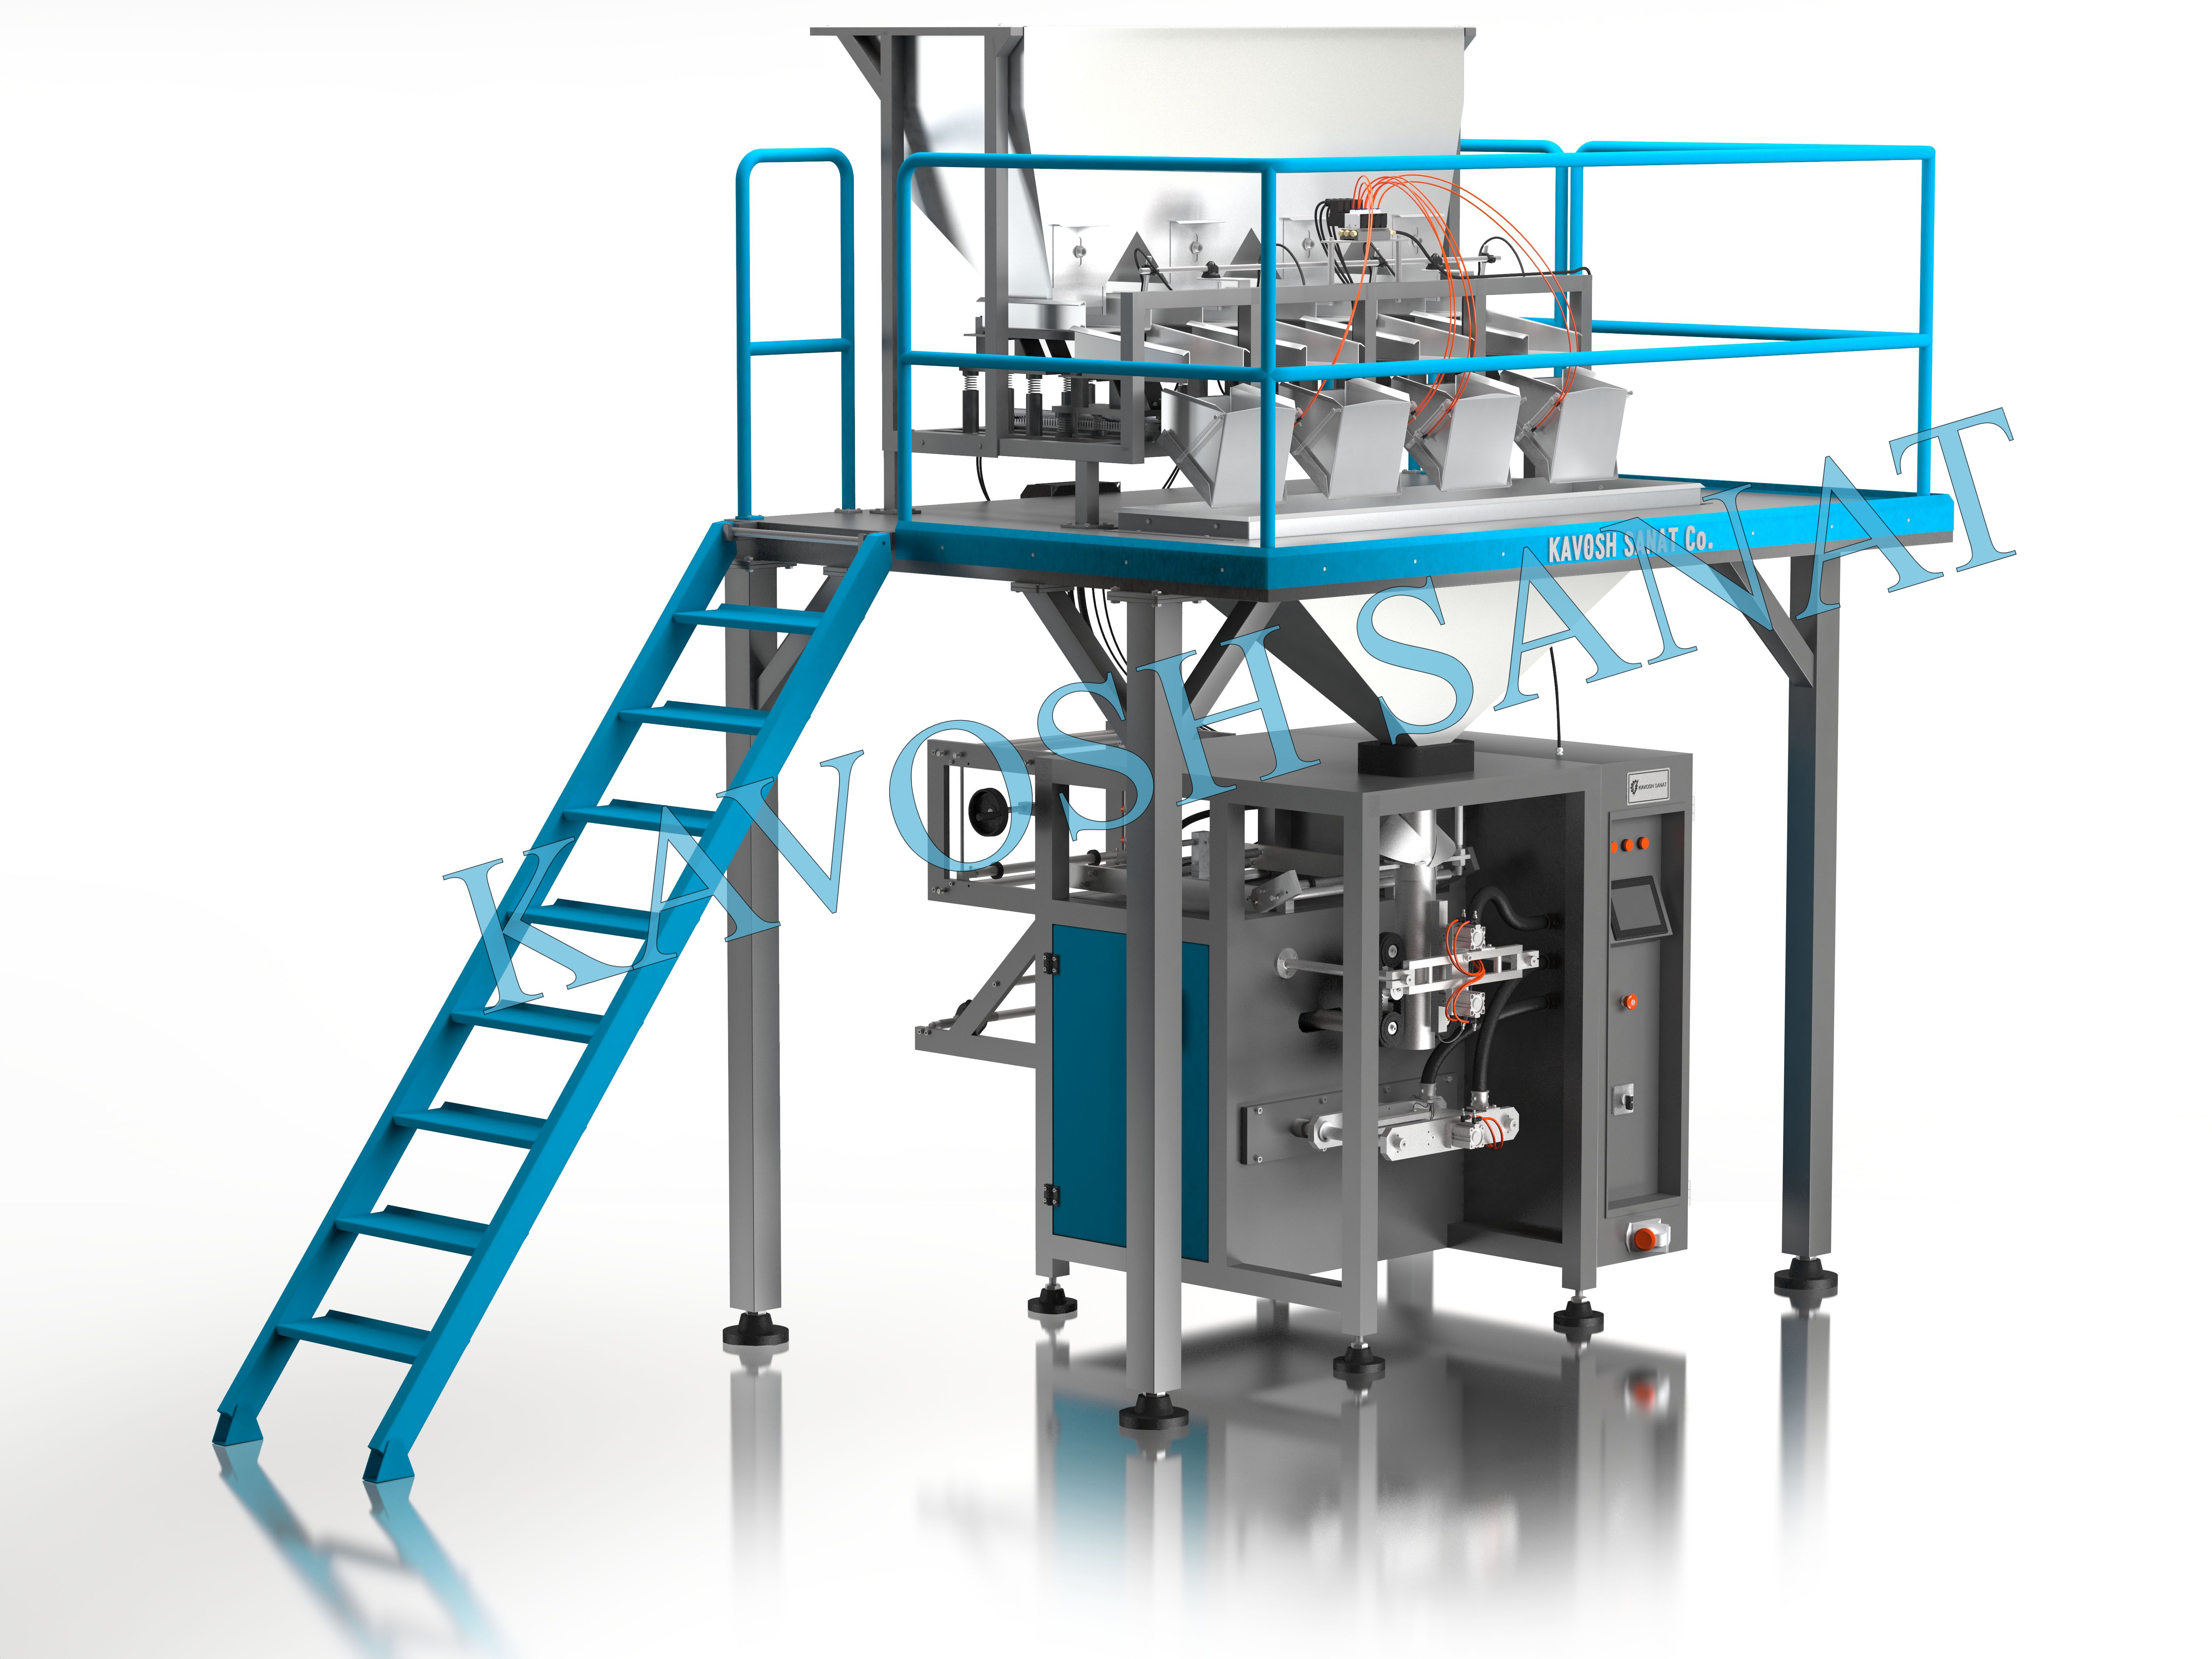 Kavosh Sanat - Cereal packaging machine